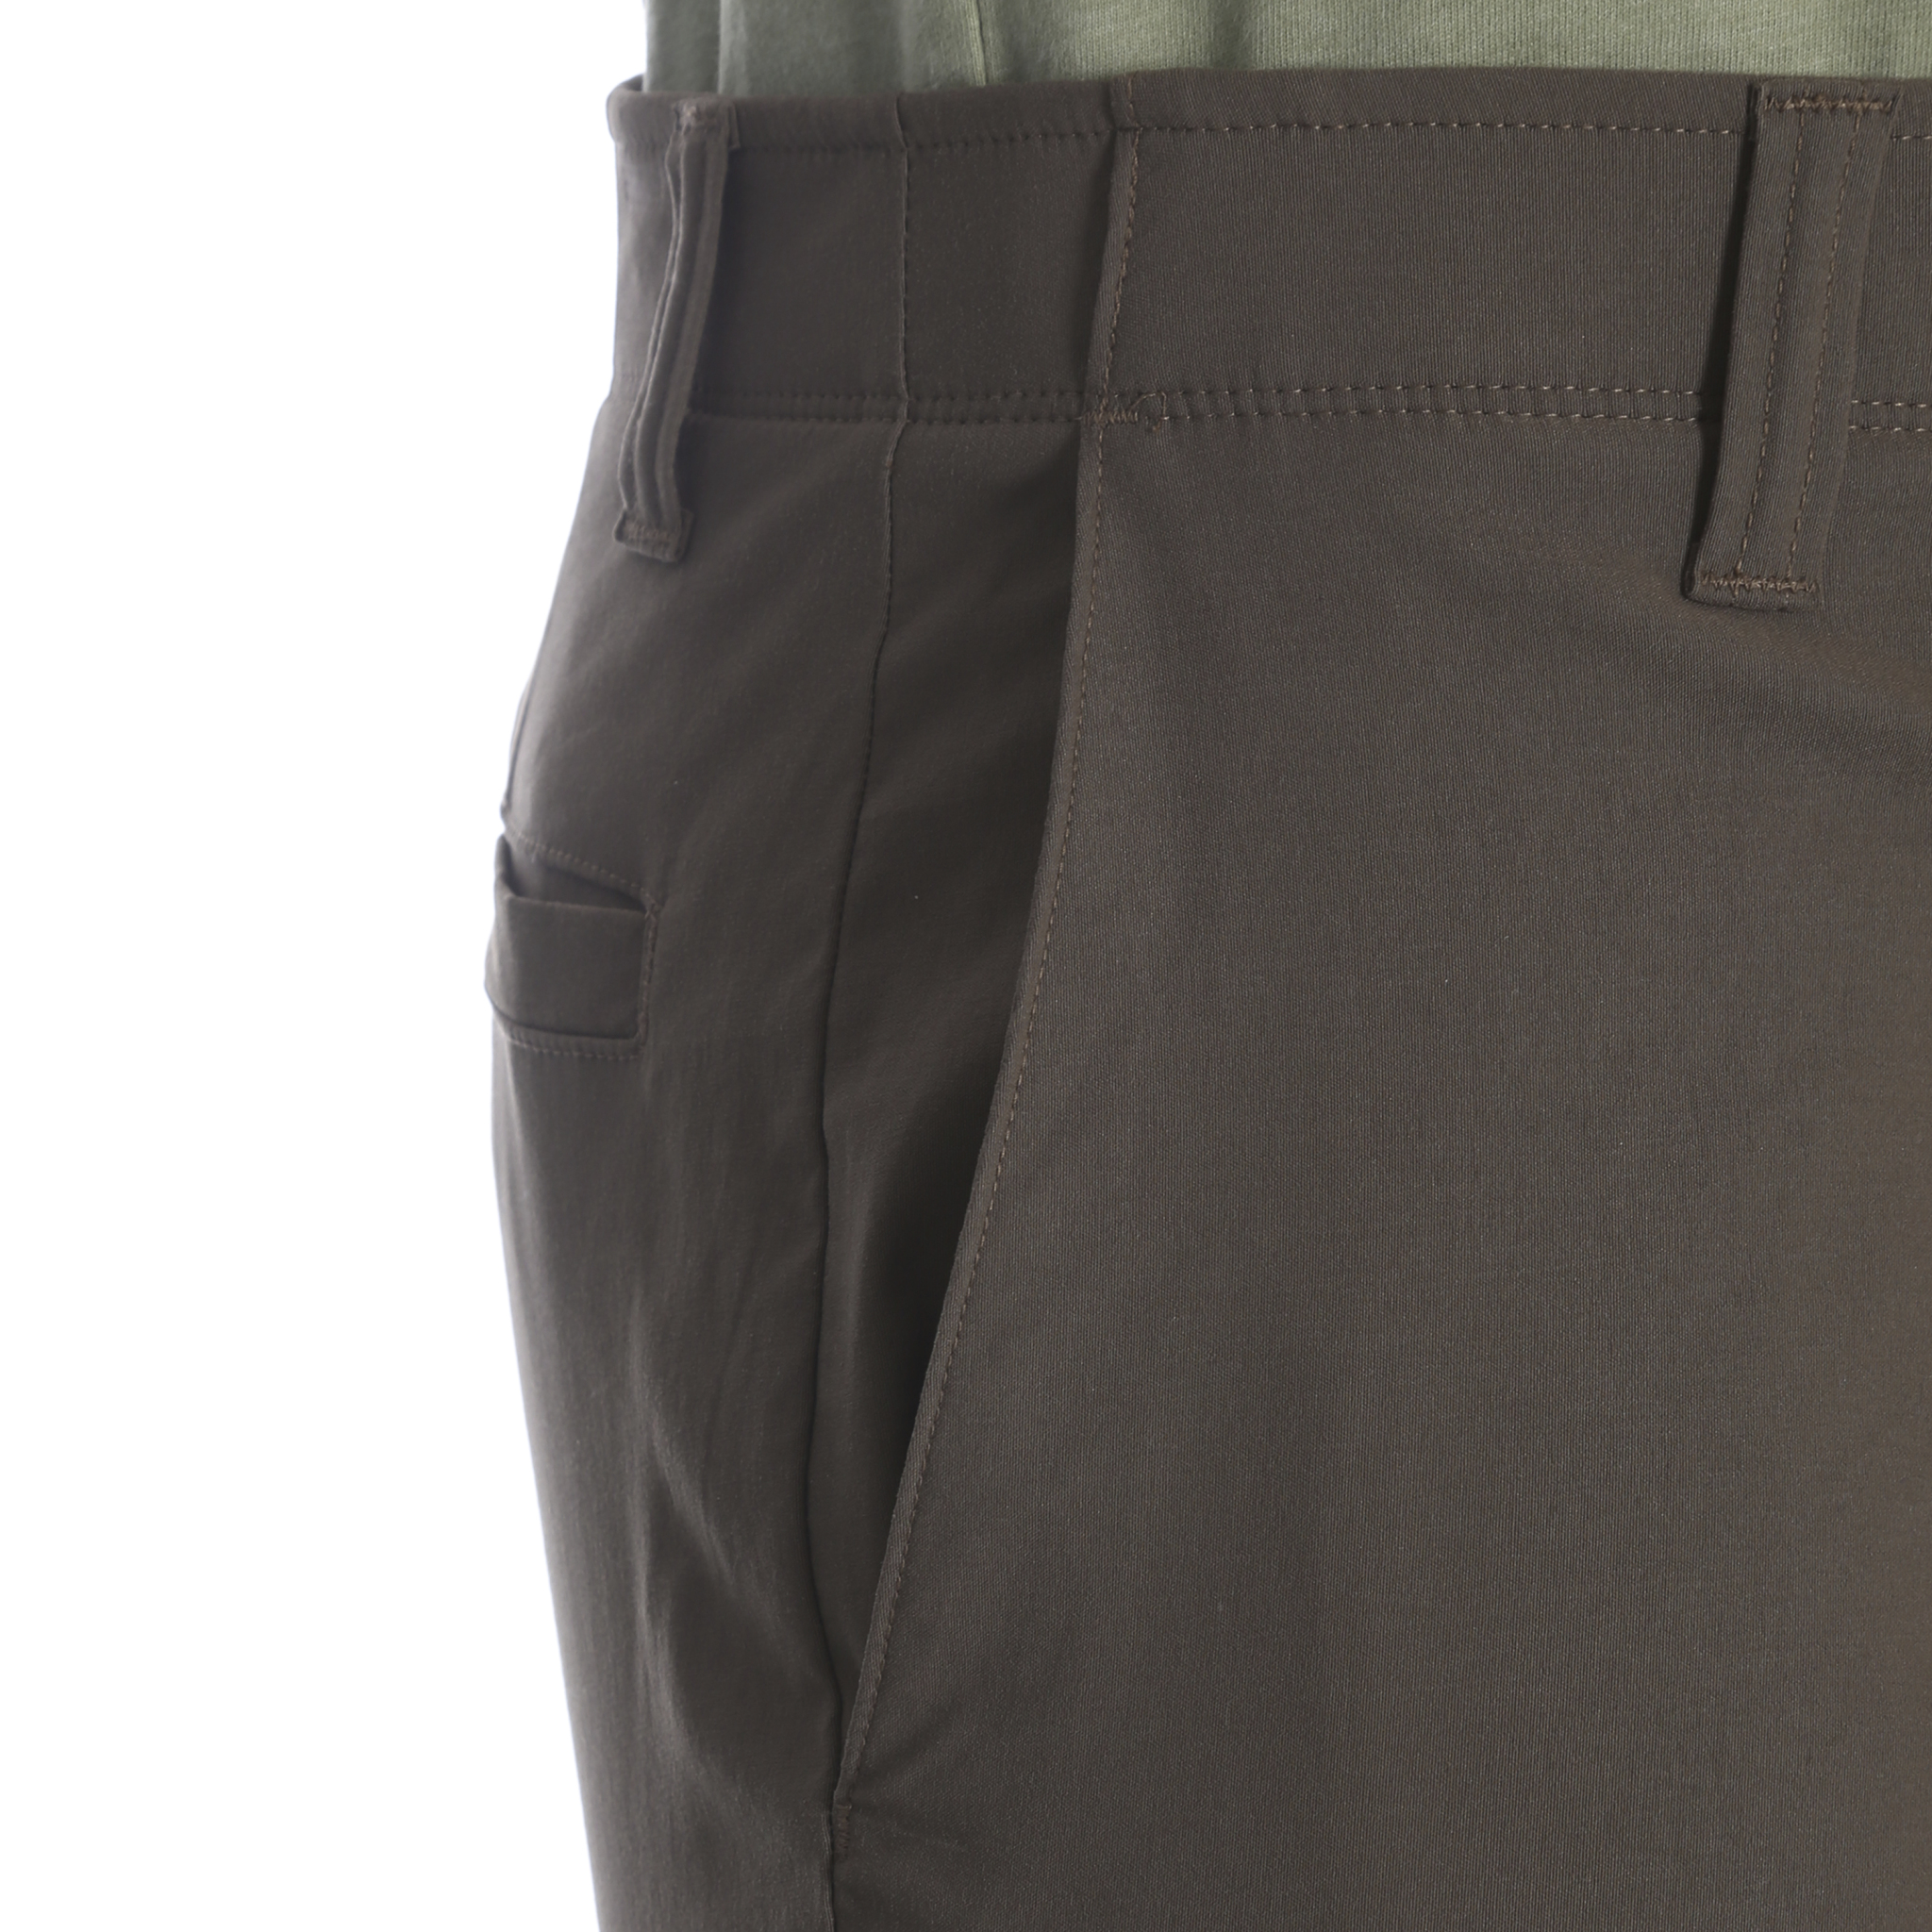 Wrangler-NEW-Solid-Men-039-s-Performance-Series-Outdoor-Comfort-Straight-Leg-Pants thumbnail 12